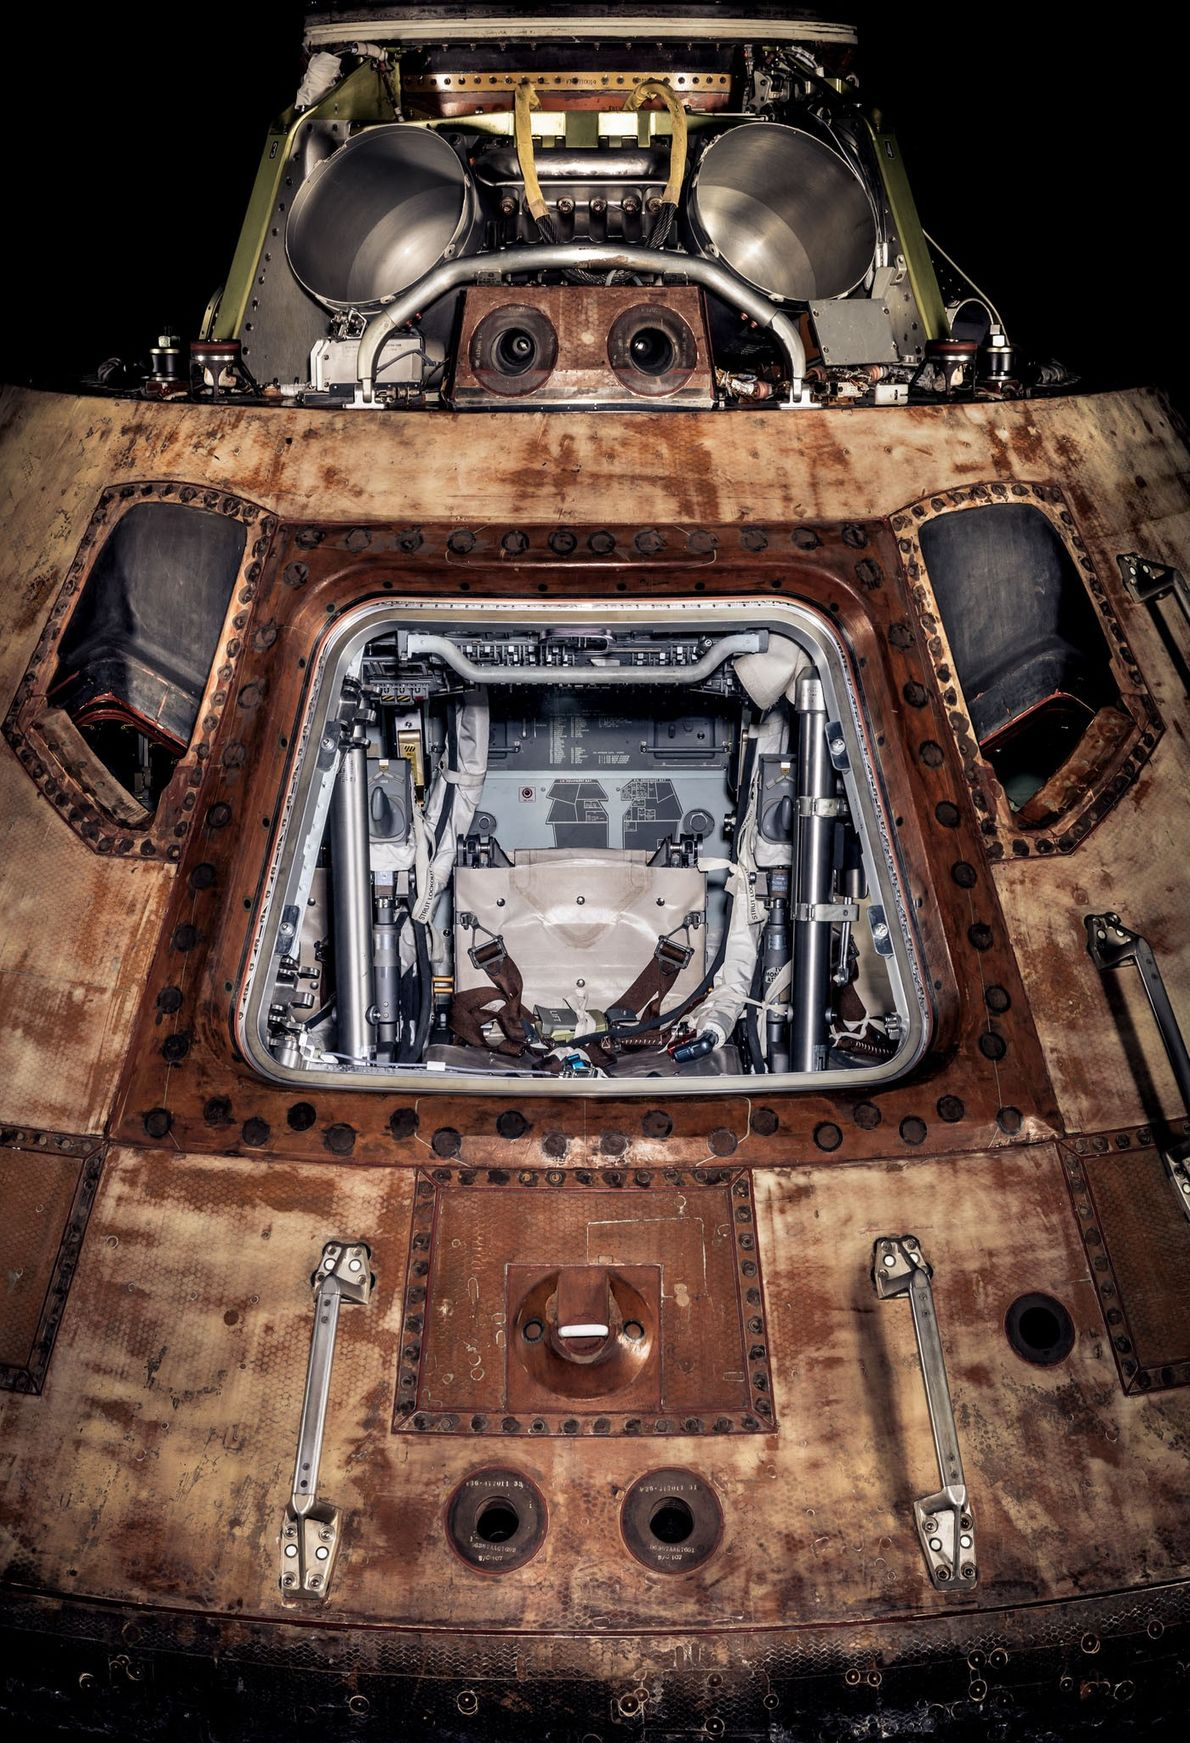 The Apollo 11 crew, including the first astronauts to land on the moon, were carried into ...